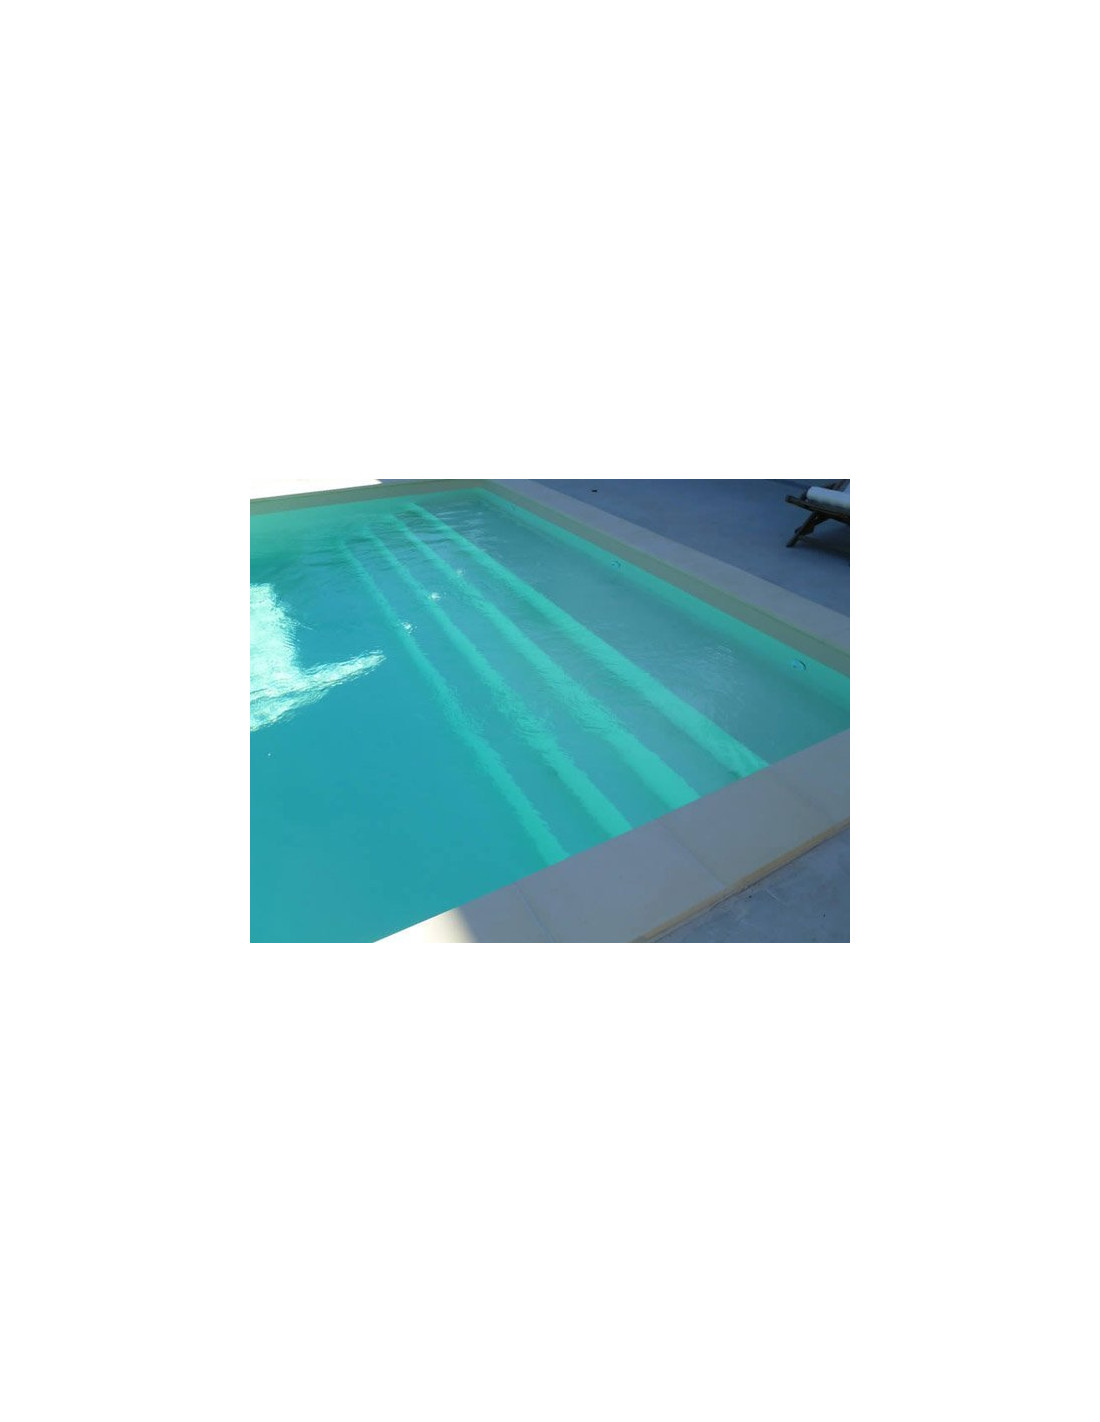 Kit piscine enterr e avec escalier modulo for Piscine en kit rectangulaire